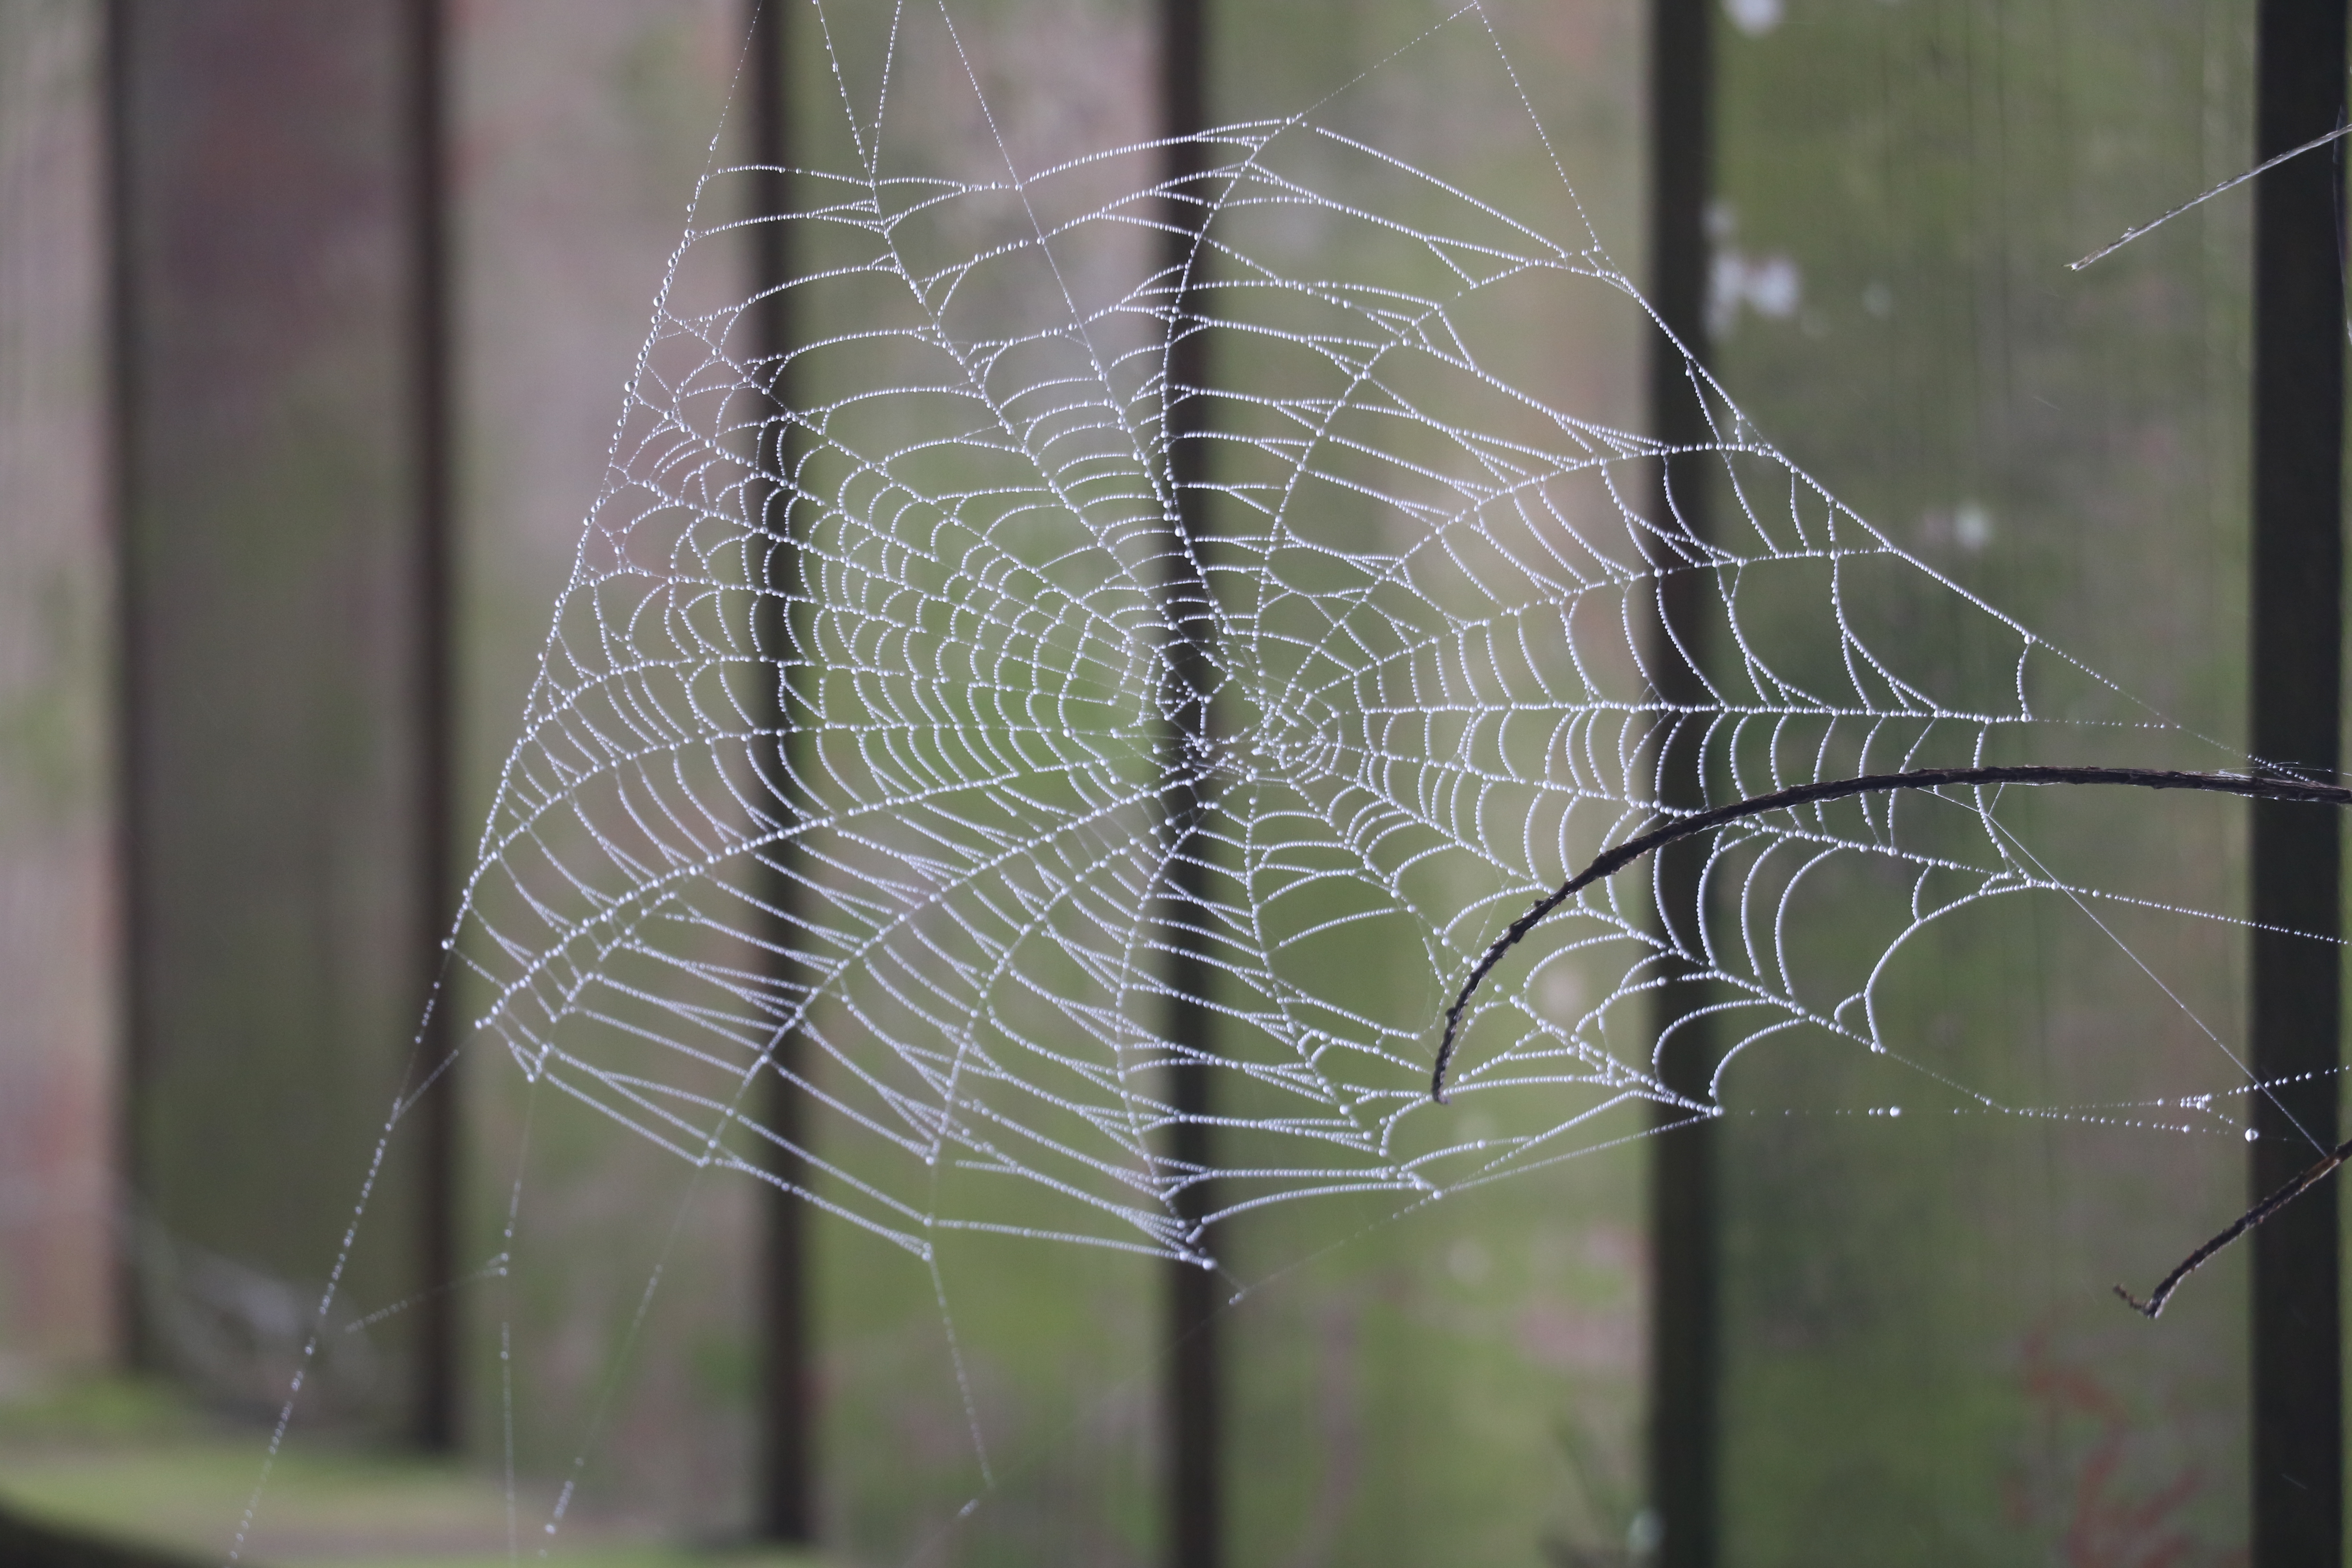 spider net rain drop